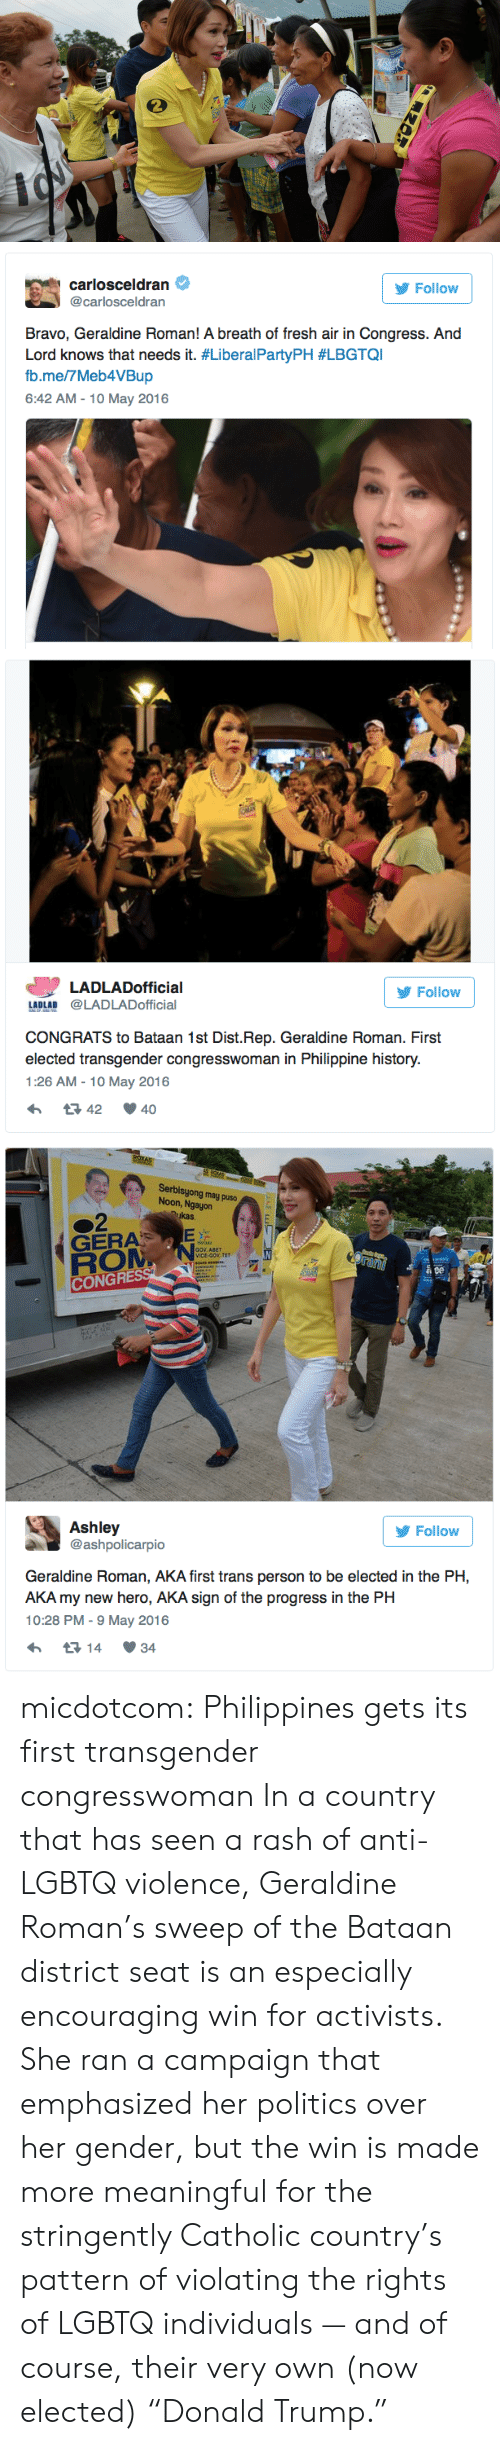 """Fresh, Politics, and Target: carlosceldran  @carlosceldran  Follow  Bravo, Geraldine Roman! A breath of fresh air in Congress. And  Lord knows that needs it. #LiberalPartyPH #LBGTQI  b.me/7Meb4VBup  6:42 AM - 10 May 2016   LADLADofficial  Follow  LADLAD @LADLADofficial  CONGRATS to Bataan 1st Dist.Rep. Geraldine Roman. First  elected transgender congresswoman in Philippine history.  1:26 AM-10 May 2016  42 40   Serbisyong may puso  Noon, Ngayon  kas  GERA  GOV ABET  VICE-GOV TET  CONGR  Ashley  @ashpolicarpio  У Follow  Geraldine Roman, AKA first trans person to be elected in the PH,  AKA my new hero, AKA sign of the progress in the PH  10:28 PM- 9 May 2016  14 34 micdotcom: Philippines gets its first transgender congresswoman In a country that has seen a rash of anti-LGBTQ violence, Geraldine Roman's sweep of the Bataan district seat is an especially encouraging win for activists. She ran a campaign that emphasized her politics over her gender, but the win is made more meaningful for the stringently Catholic country's pattern of violating the rights of LGBTQ individuals — and of course, their very own (now elected) """"Donald Trump."""""""